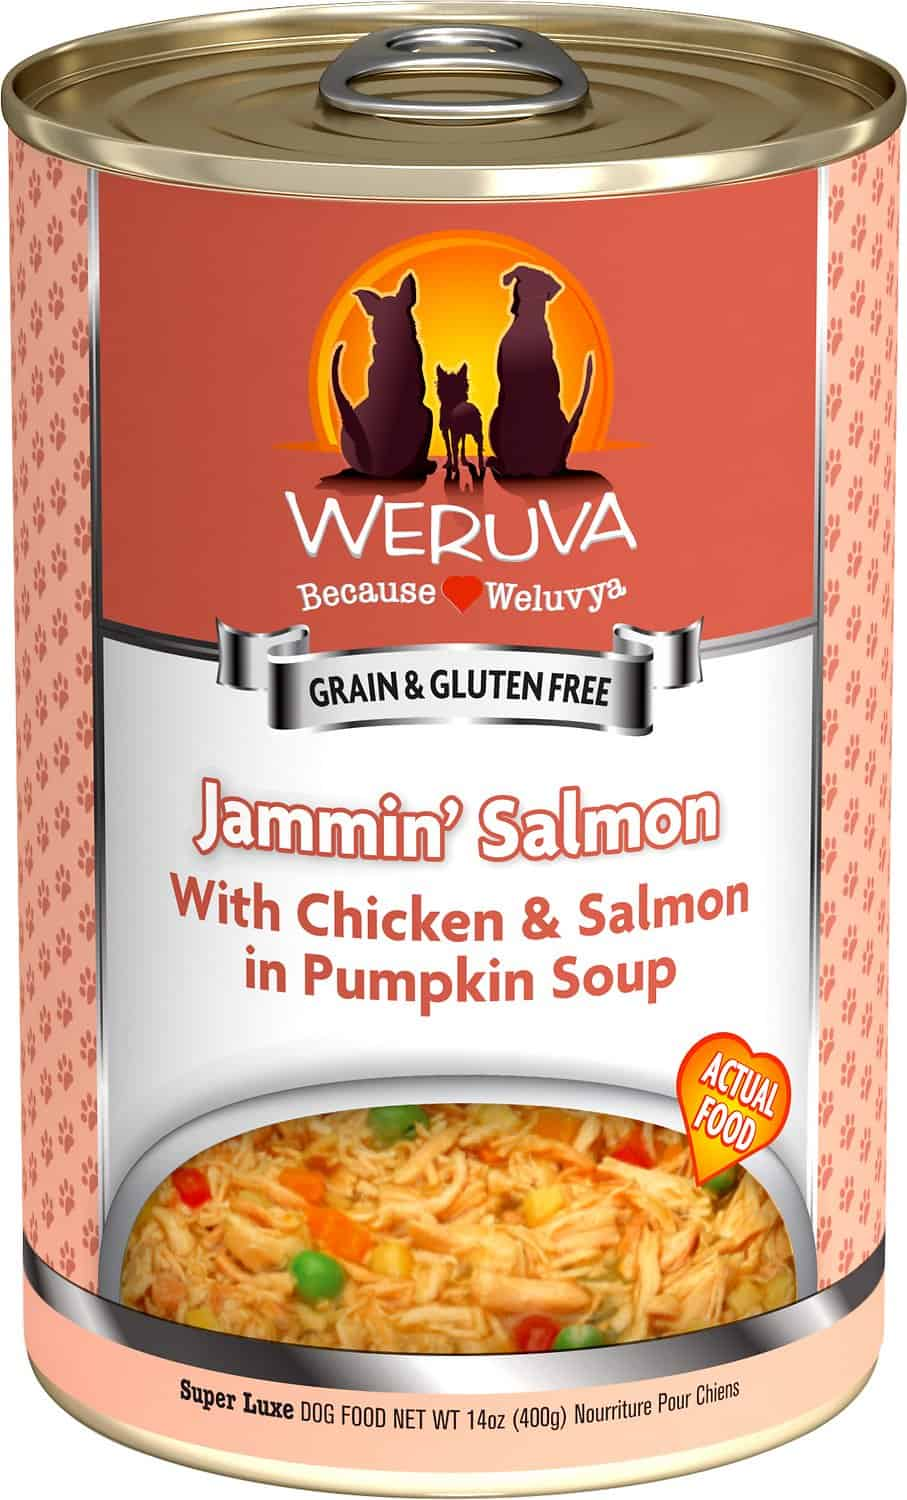 Weruva Dog Food Review 2021: Treat Your Pet To A Lil' Luxury! 15